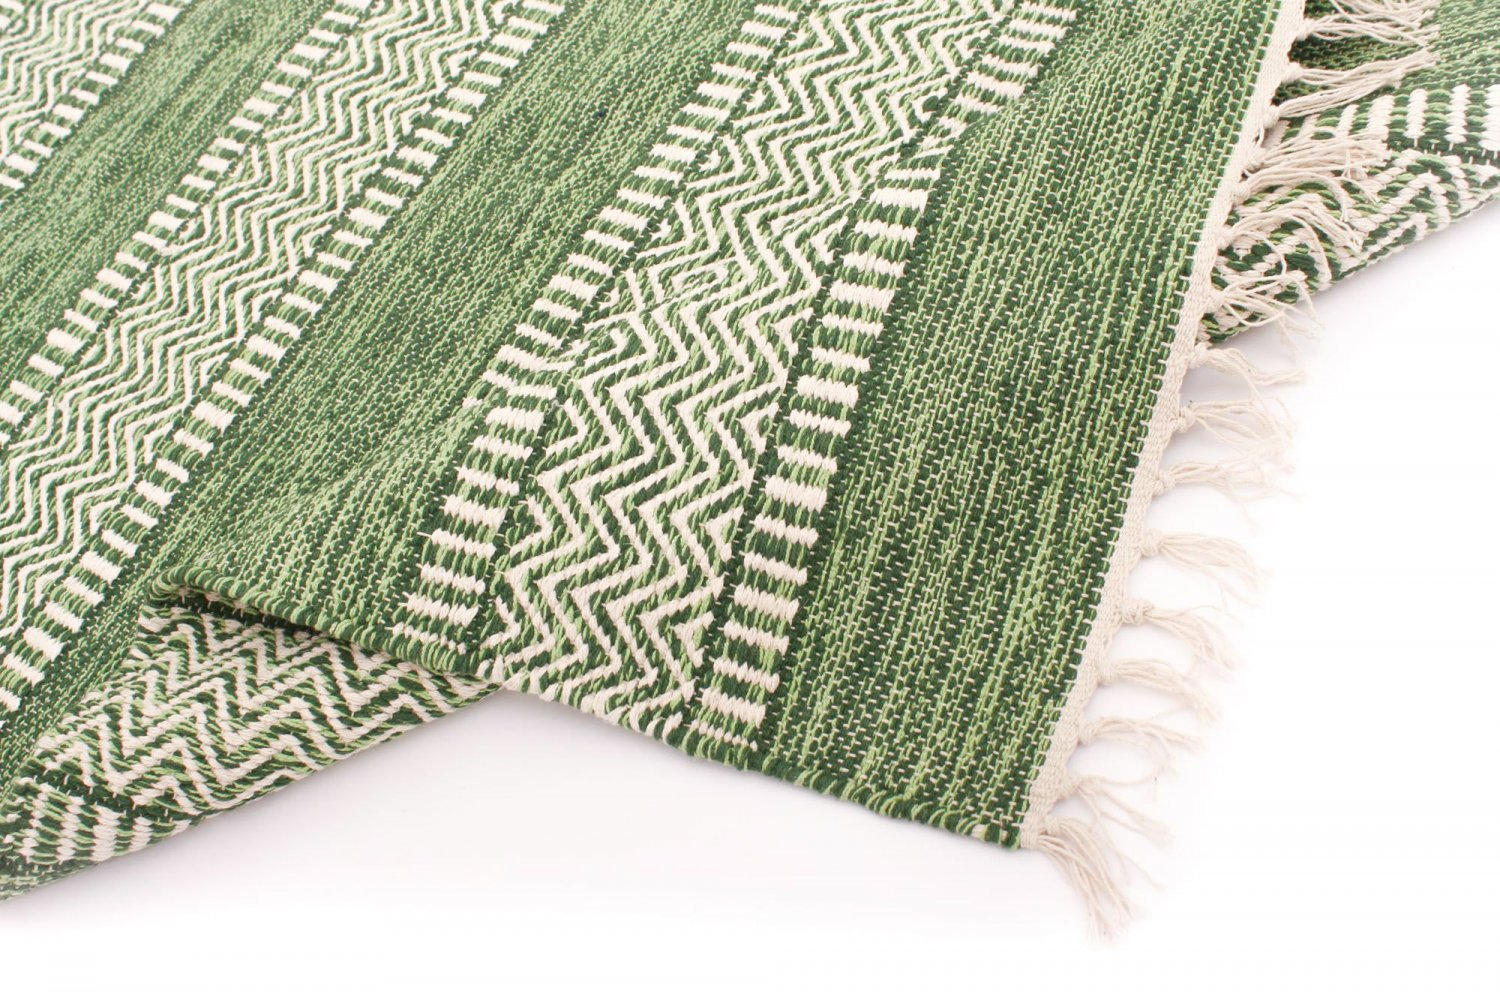 rag rugs from streh g of sweden havtorn green. Black Bedroom Furniture Sets. Home Design Ideas